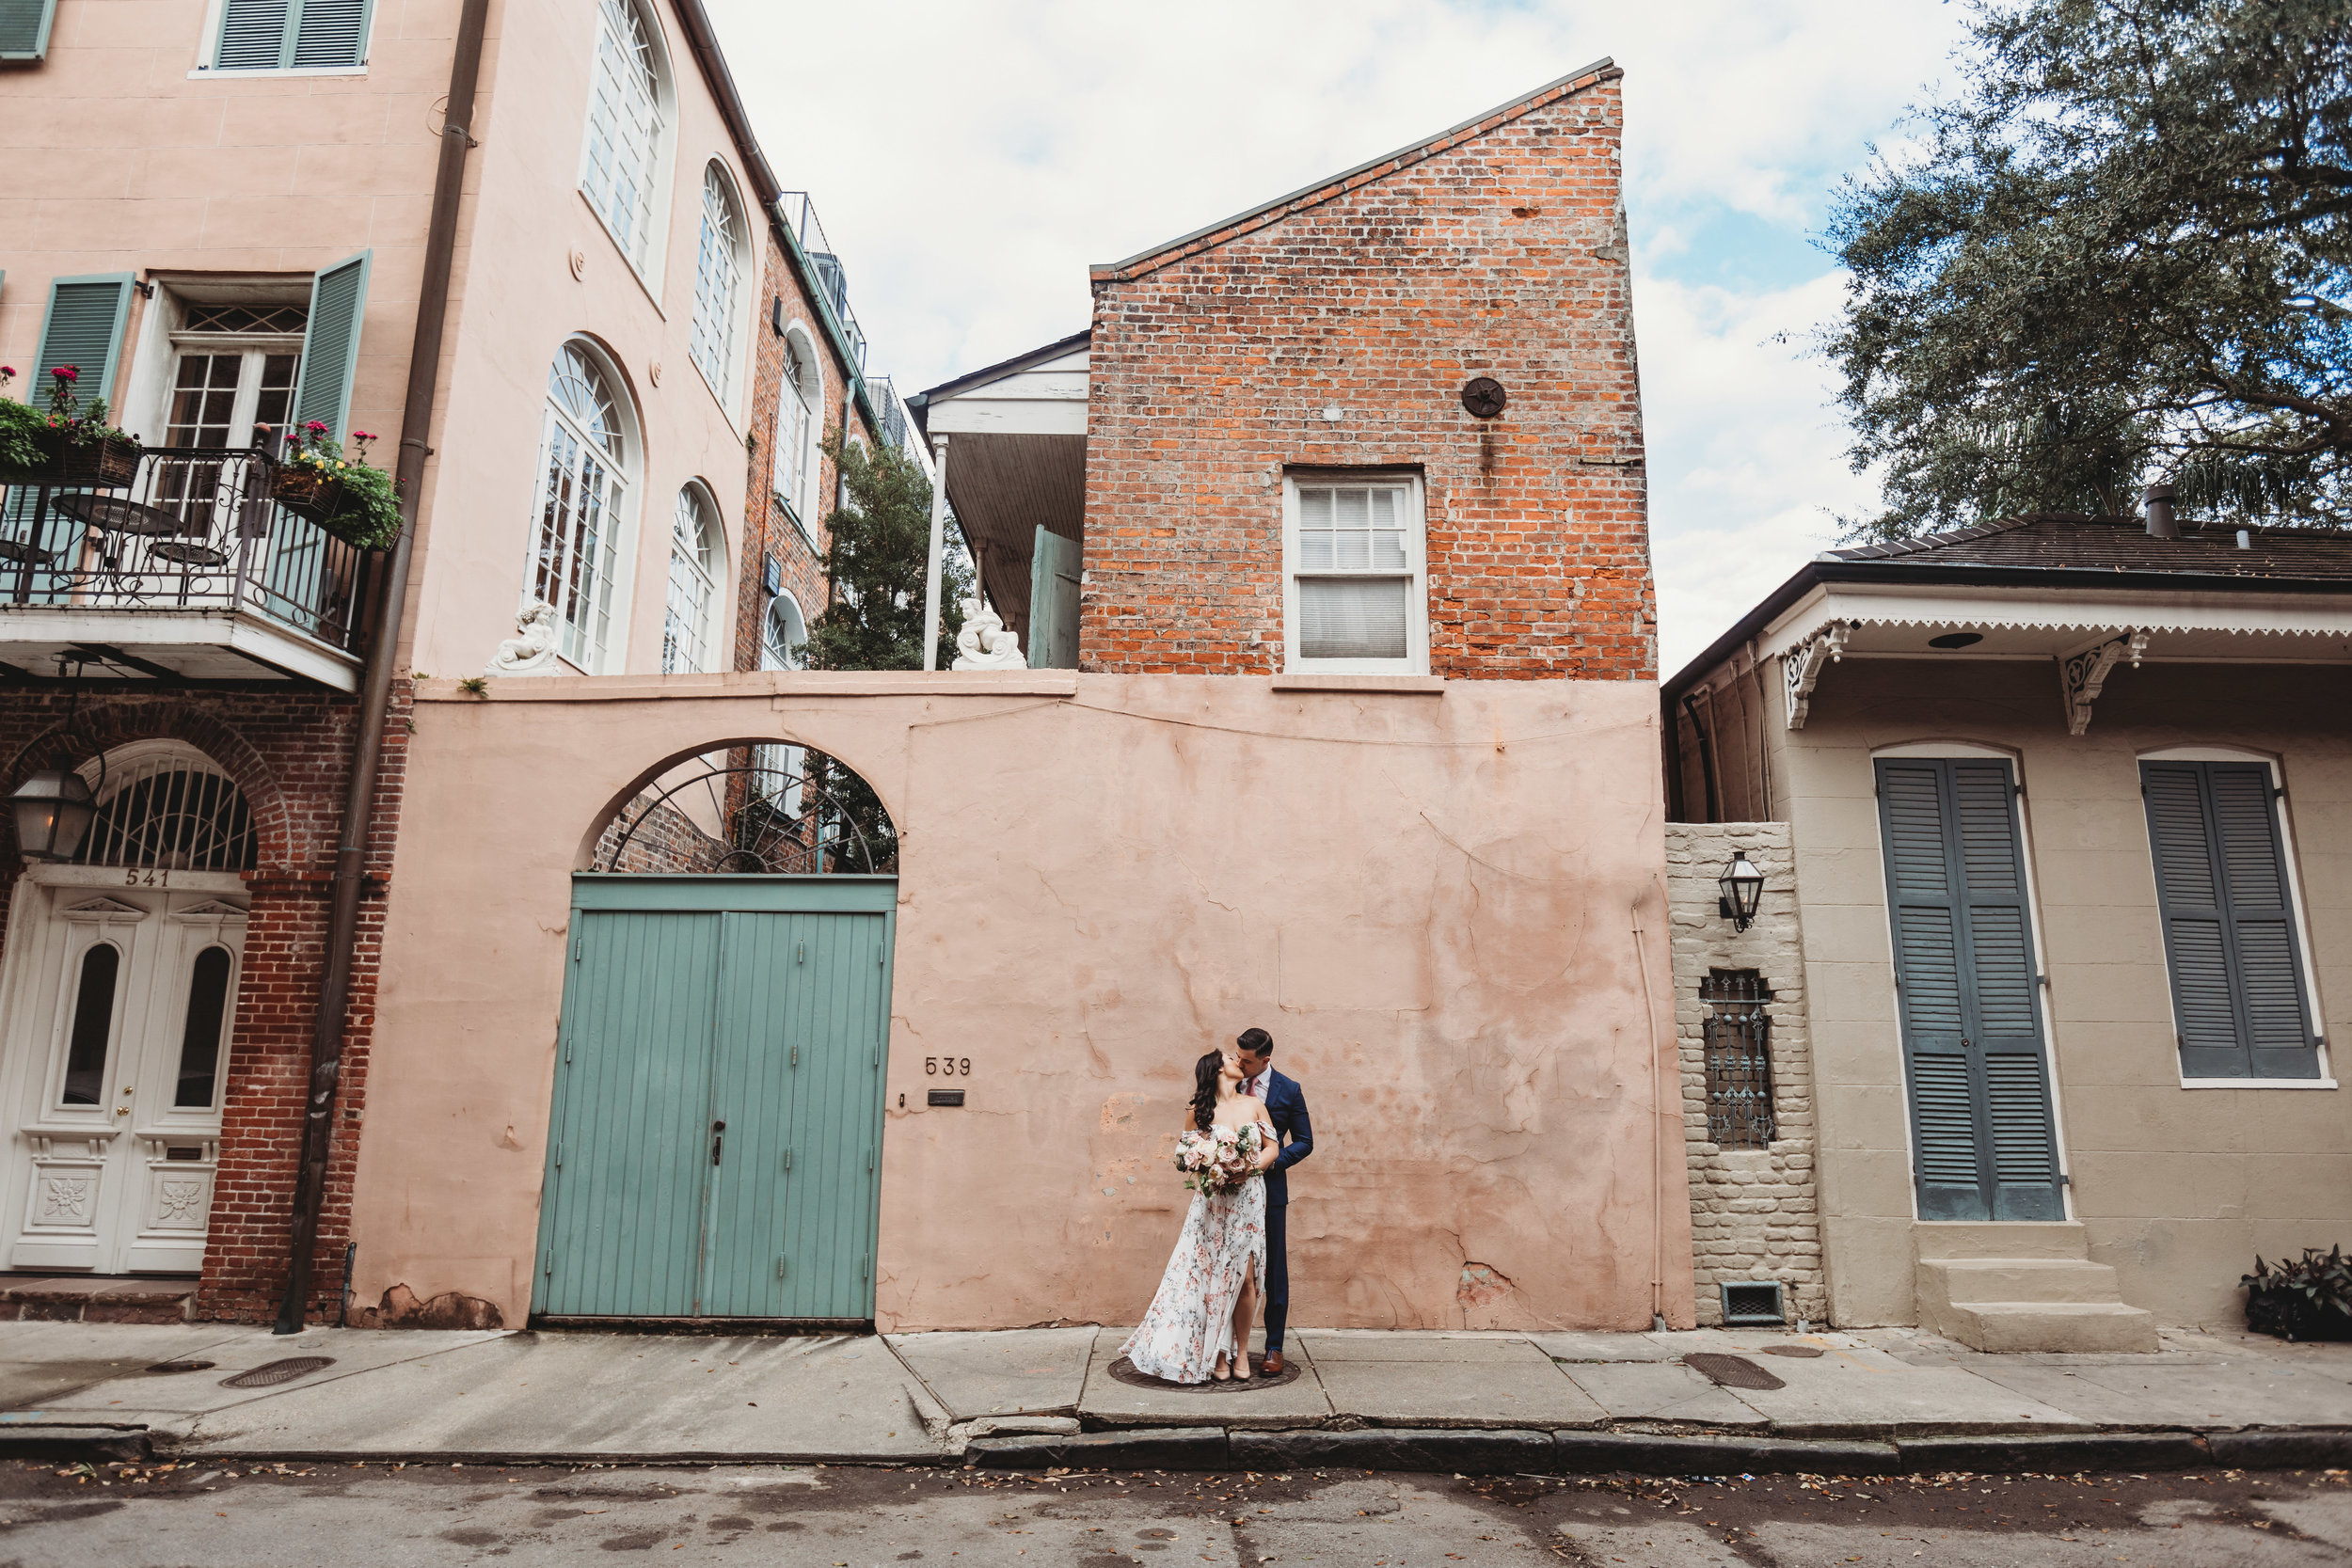 French Quarter Elopement New Orleans Wedding Photographer Ashley Biltz Photography16.jpg